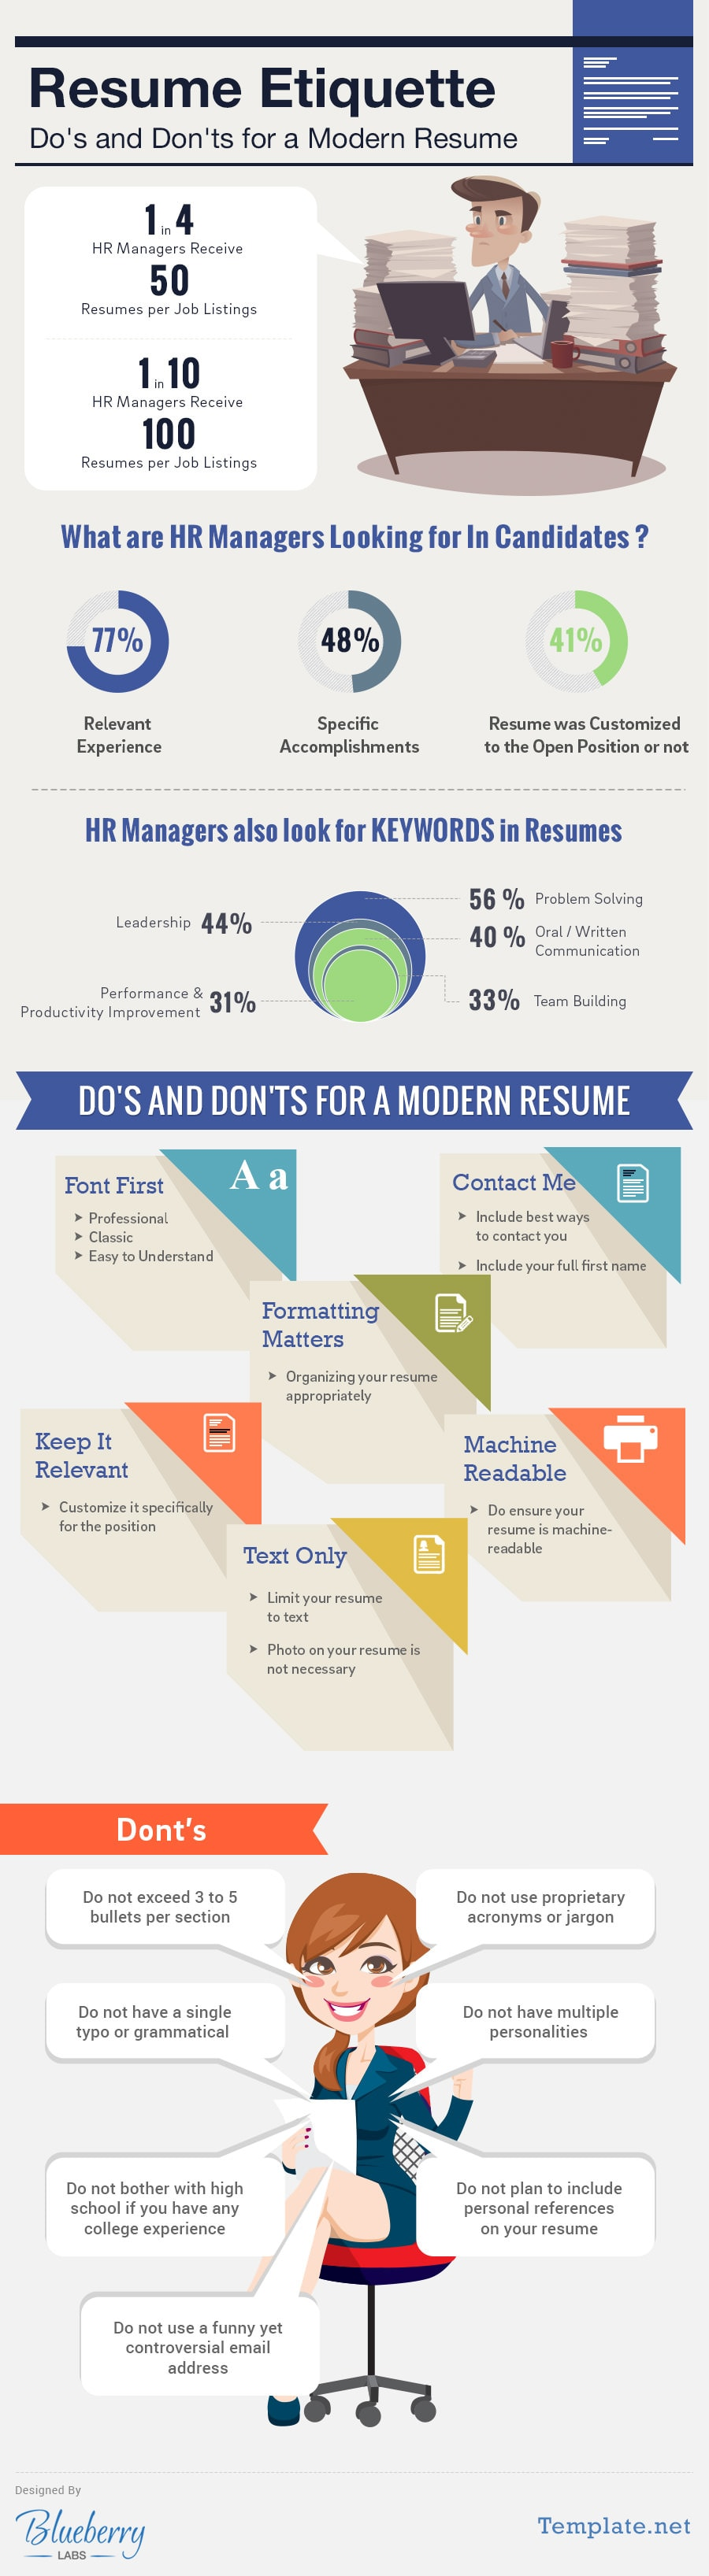 resume etiquette do s and don ts takeaways